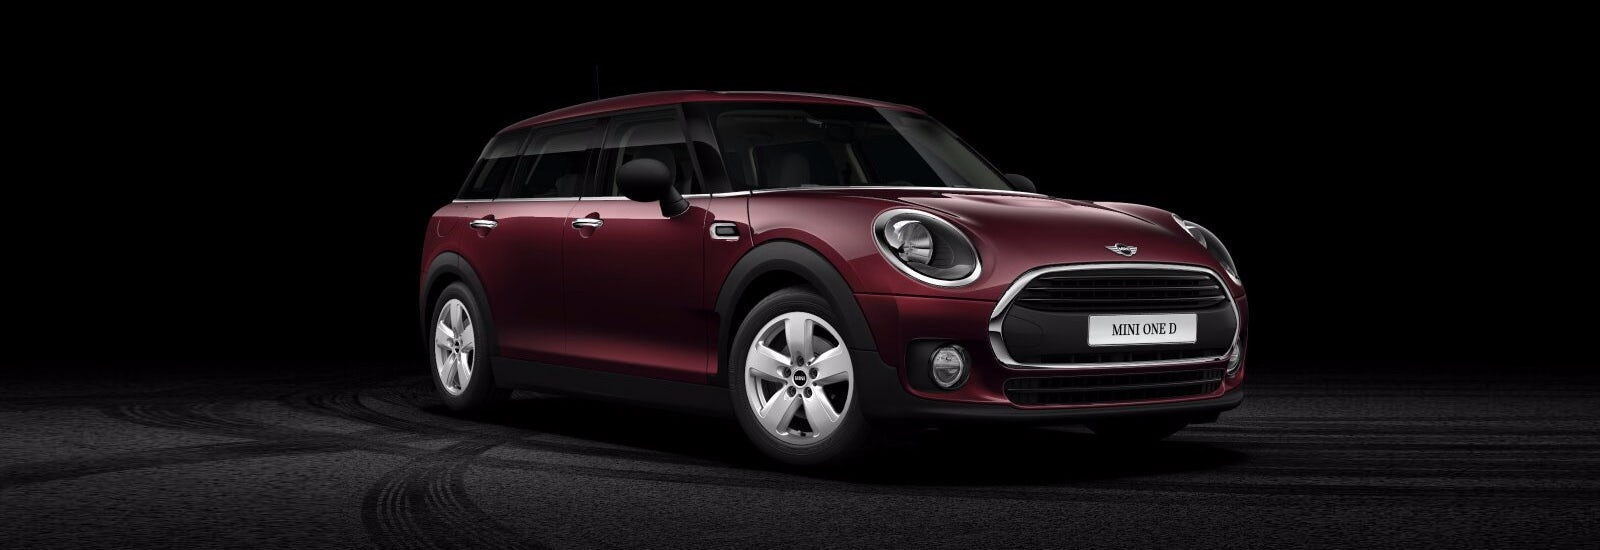 Mini Hatch 5 Door Convertible Amp Clubman Colours Guide Carwow